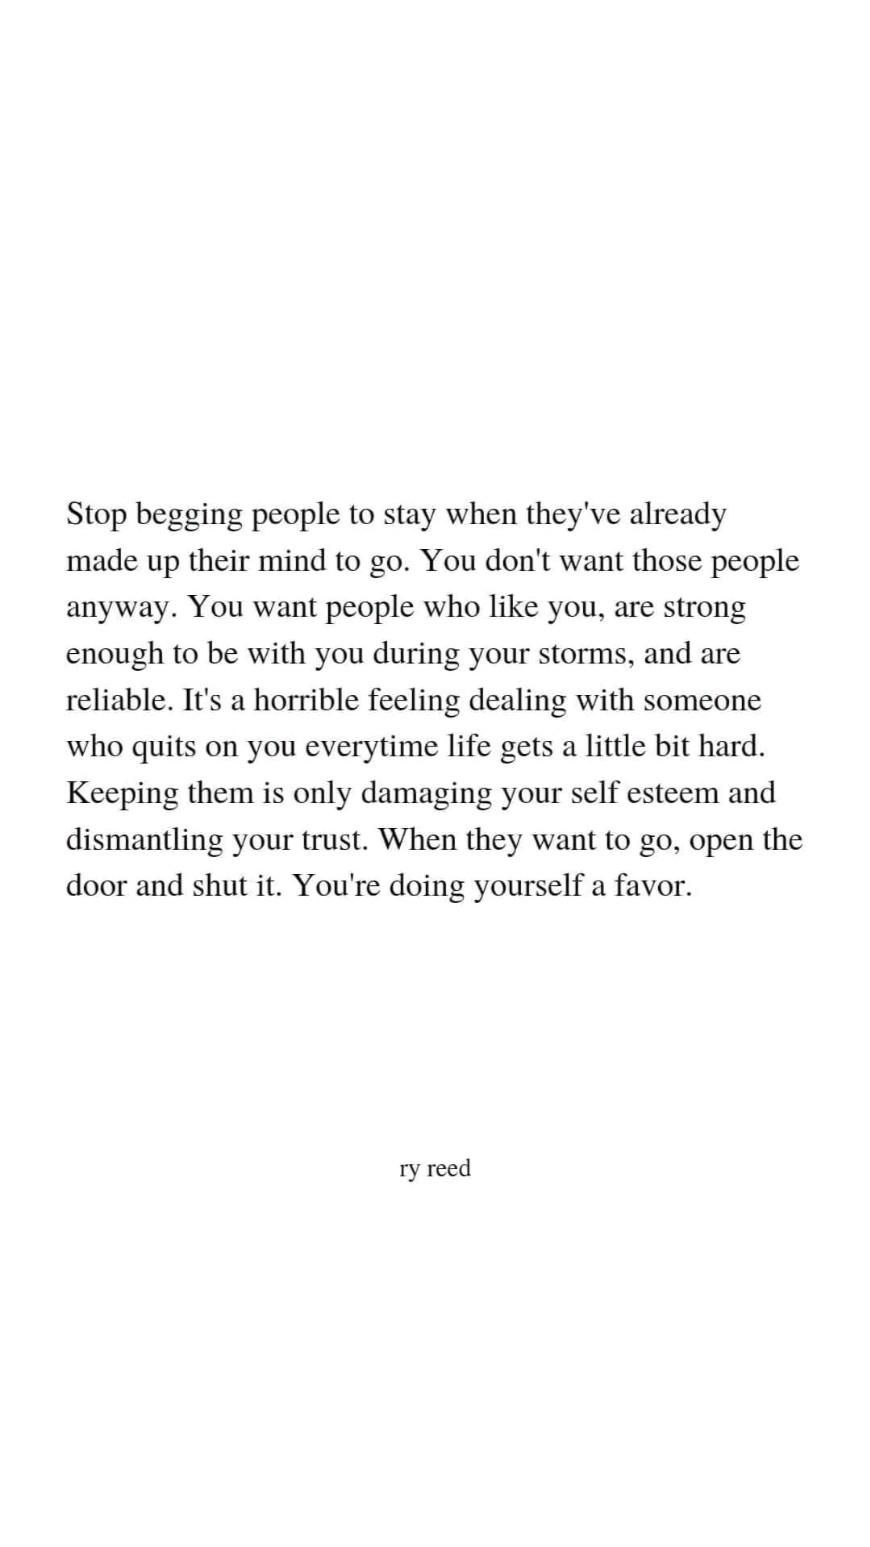 stop begging people who already left to stay